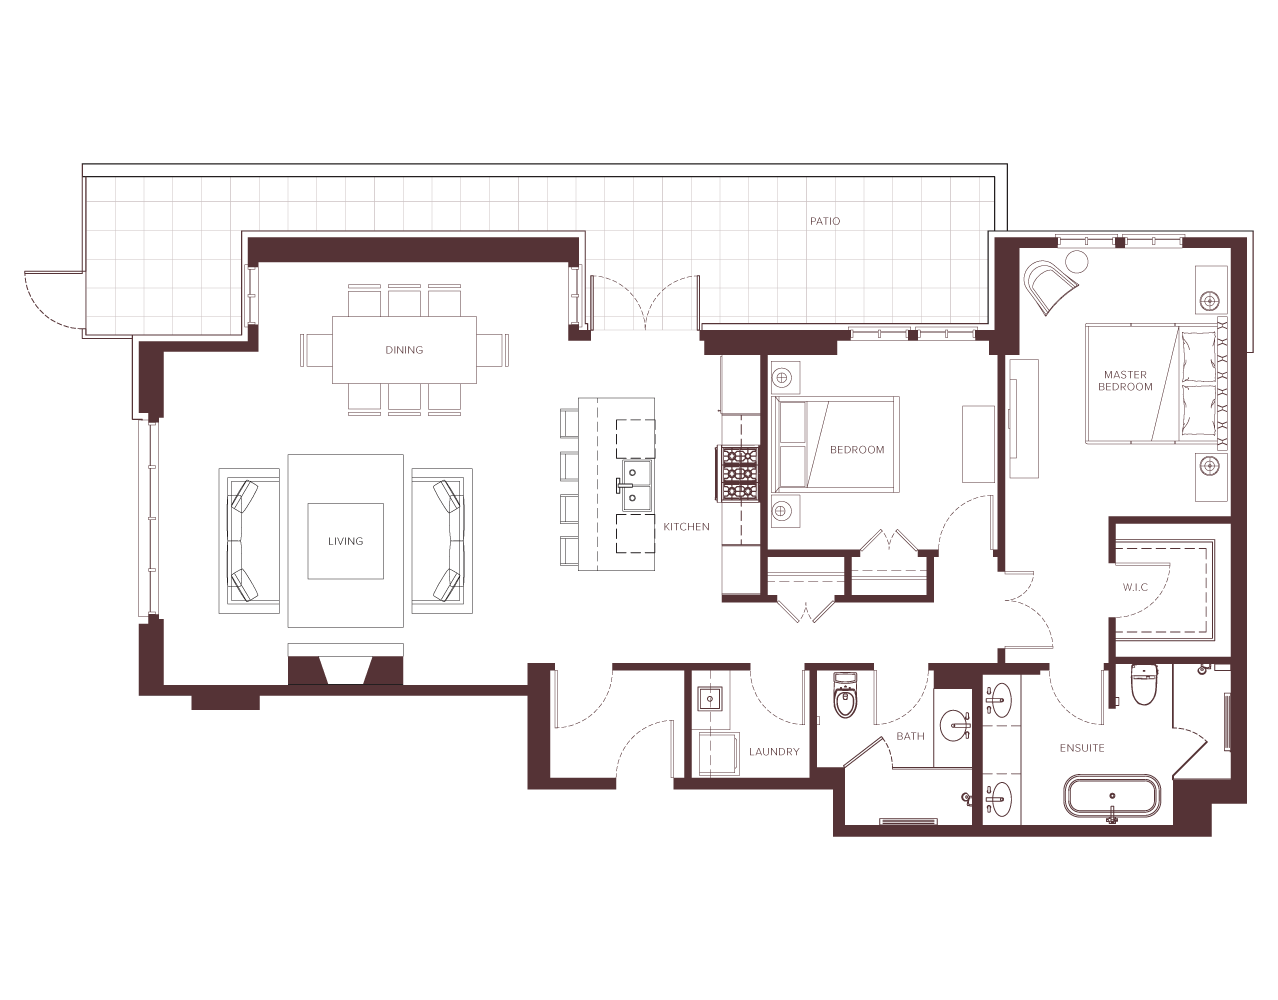 Chateau Laurier 2-bedroom floorplan